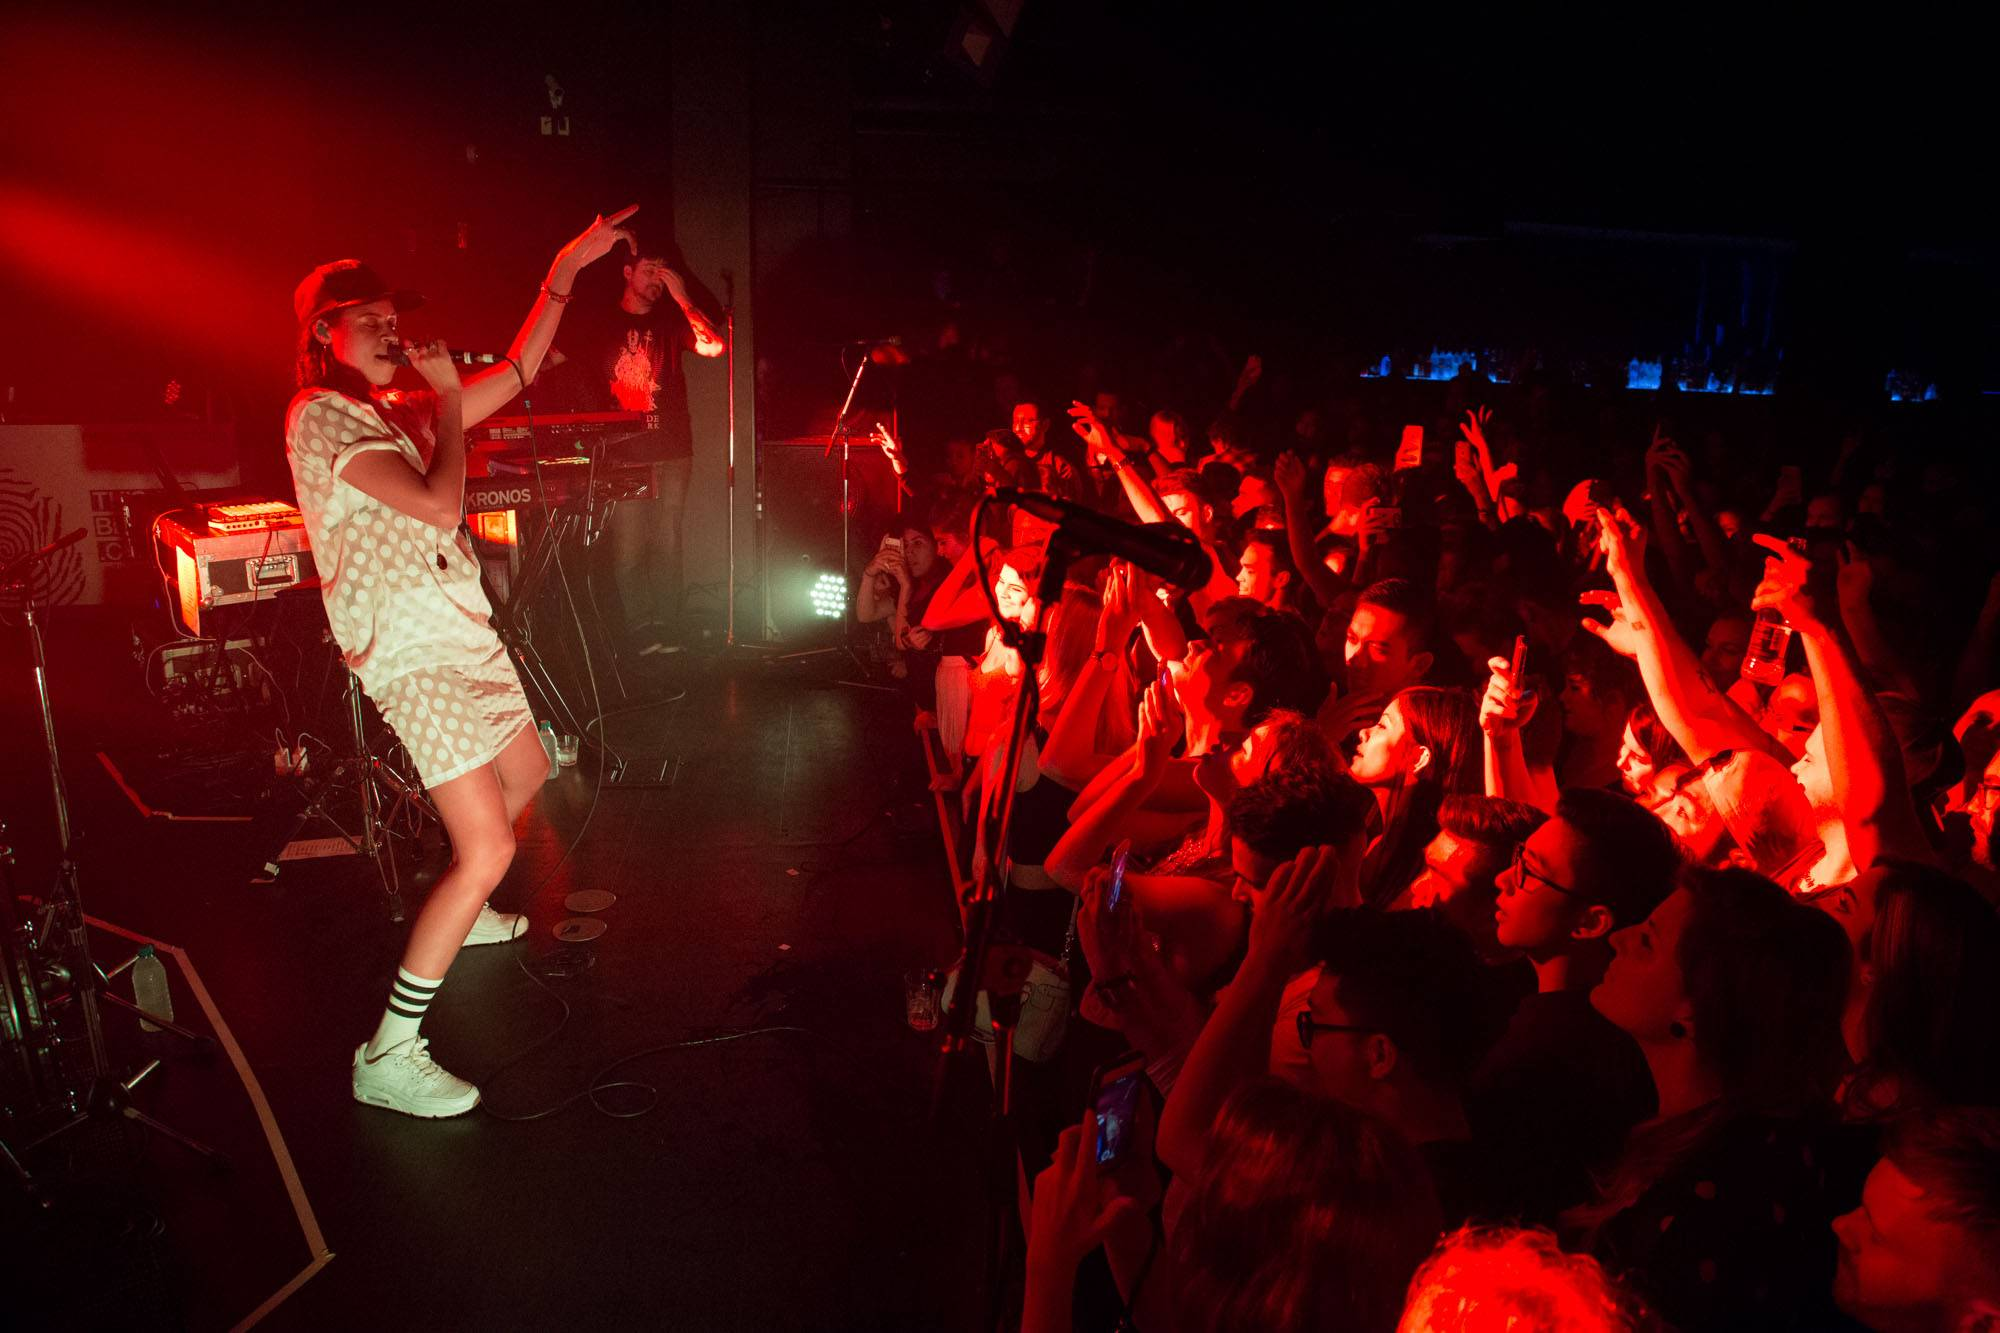 AlunaGeorge at Celebrities, Vancouver, Oct 17 2015. Kirk Chantraine photo.